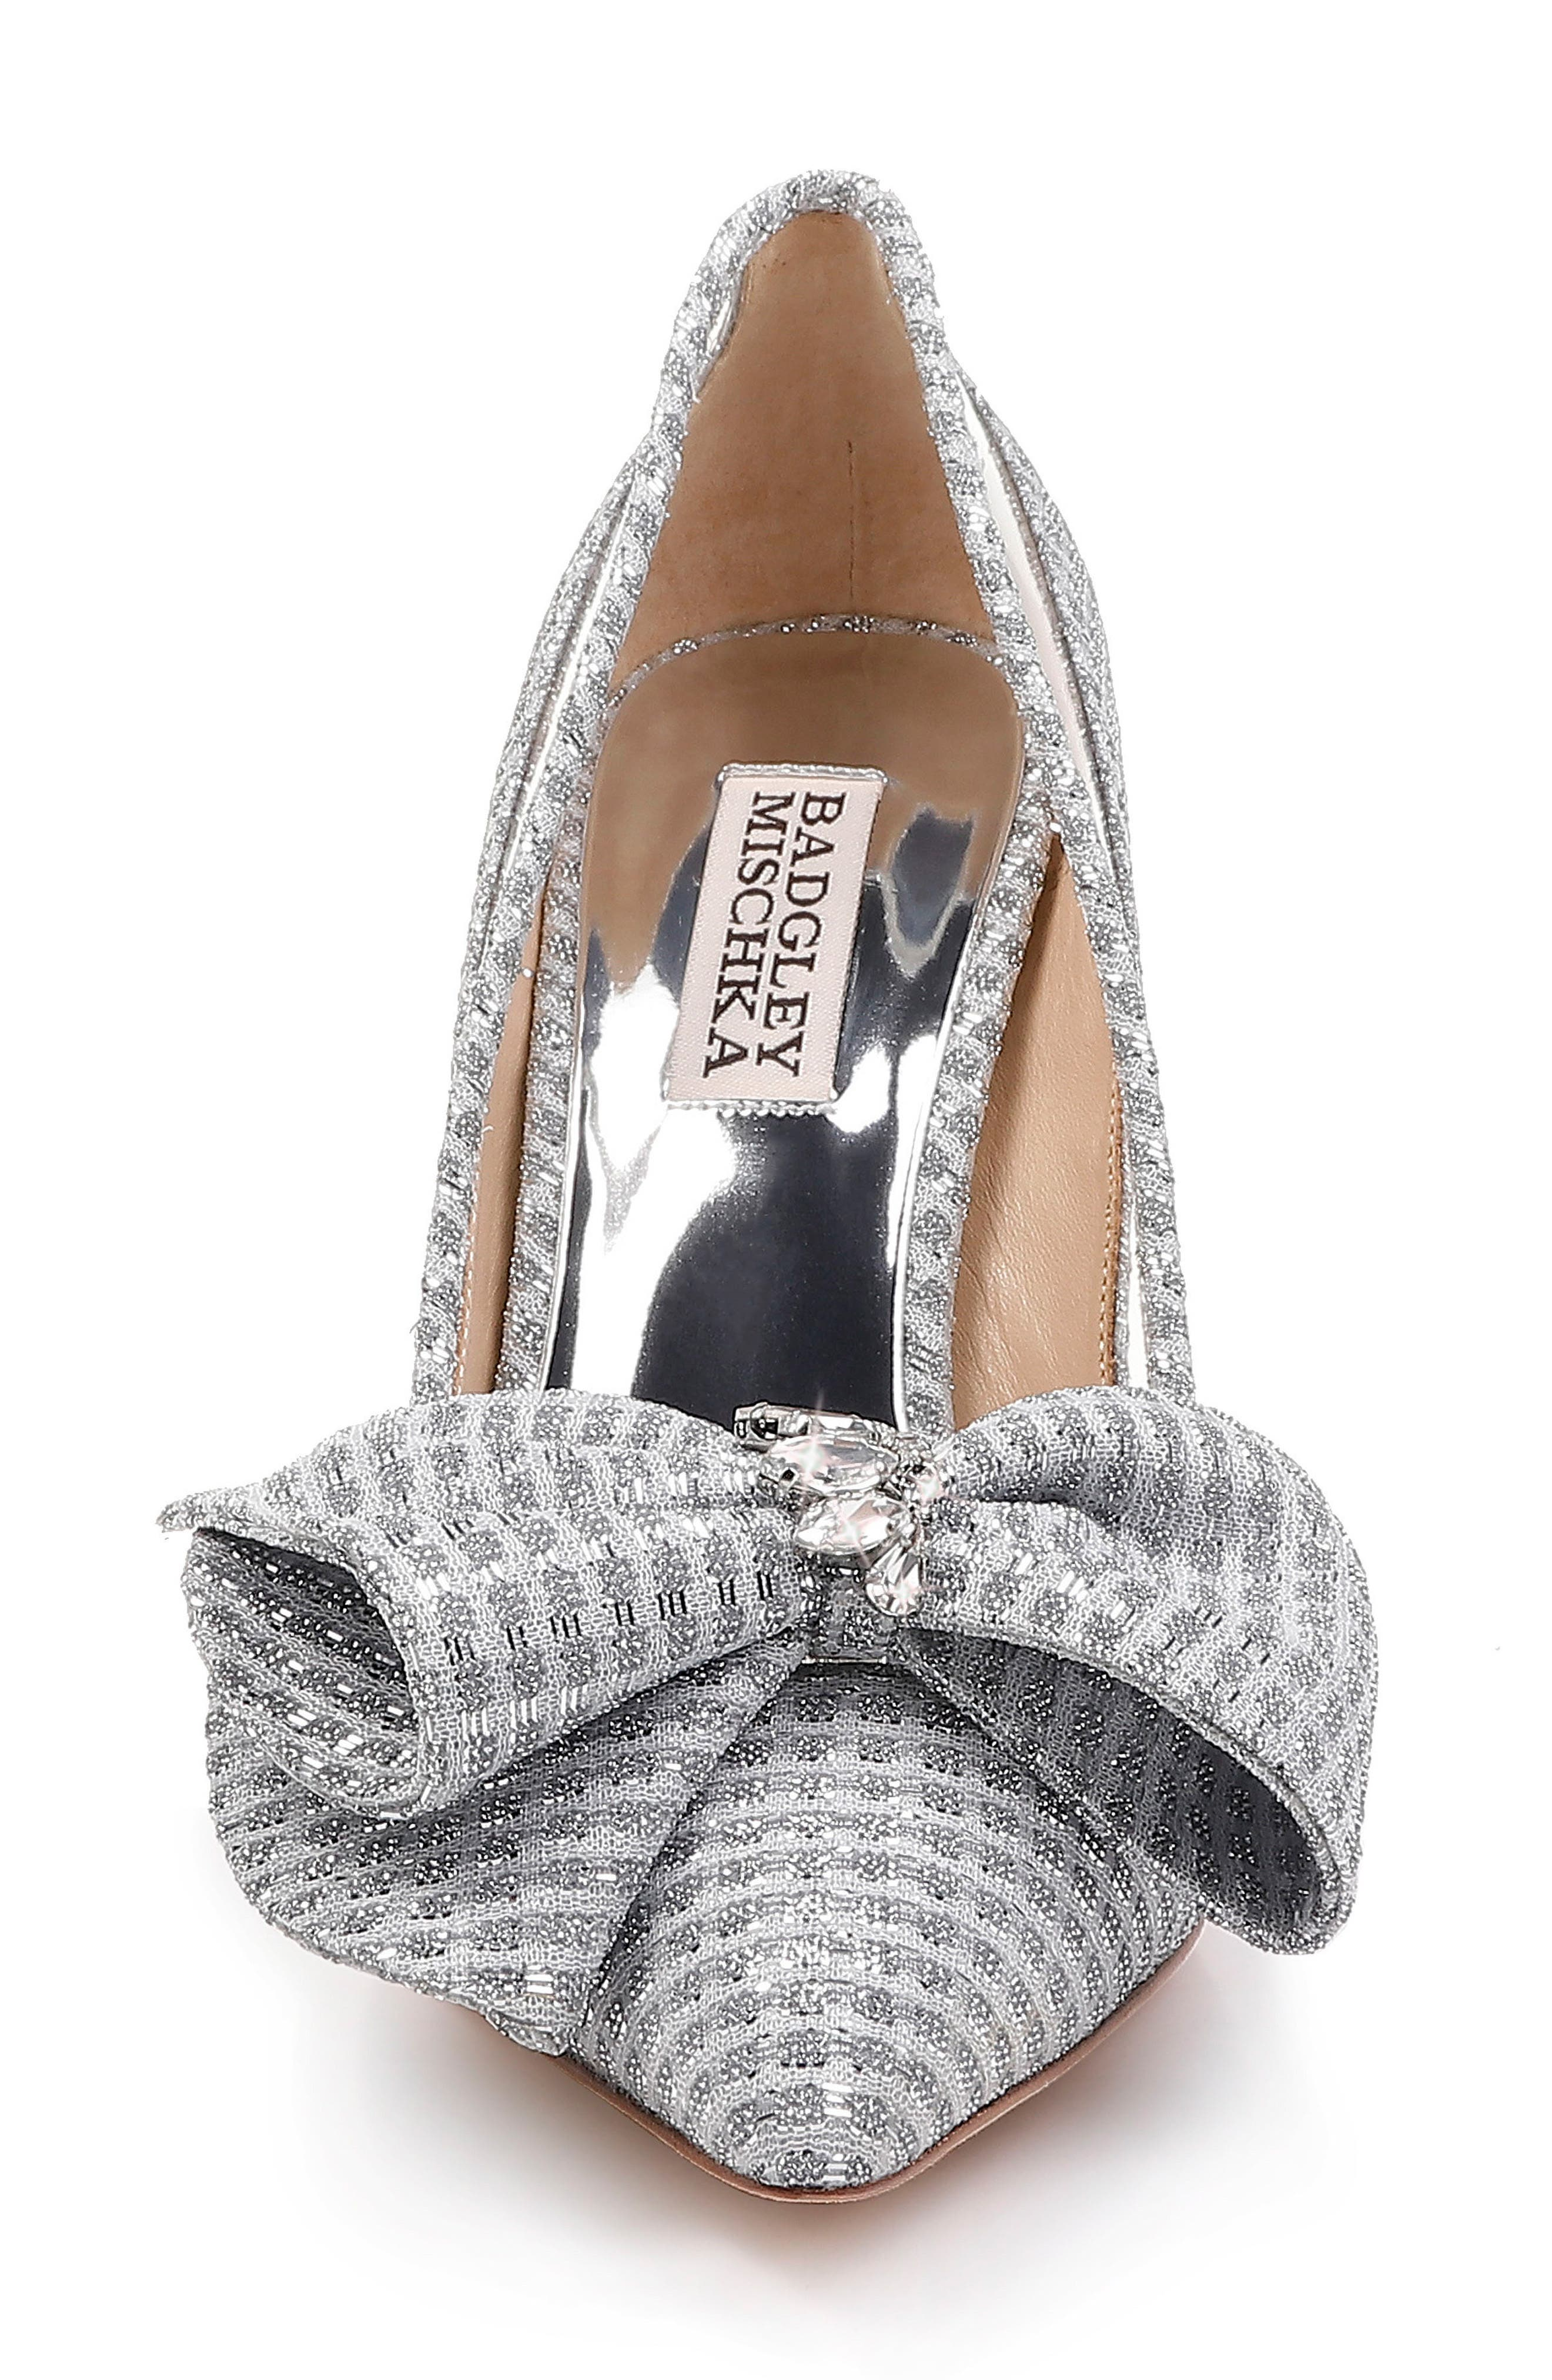 BADGLEY MISCHKA COLLECTION, Badgley Mischka Frances Bow Pump, Alternate thumbnail 4, color, SILVER GLITTER FABRIC